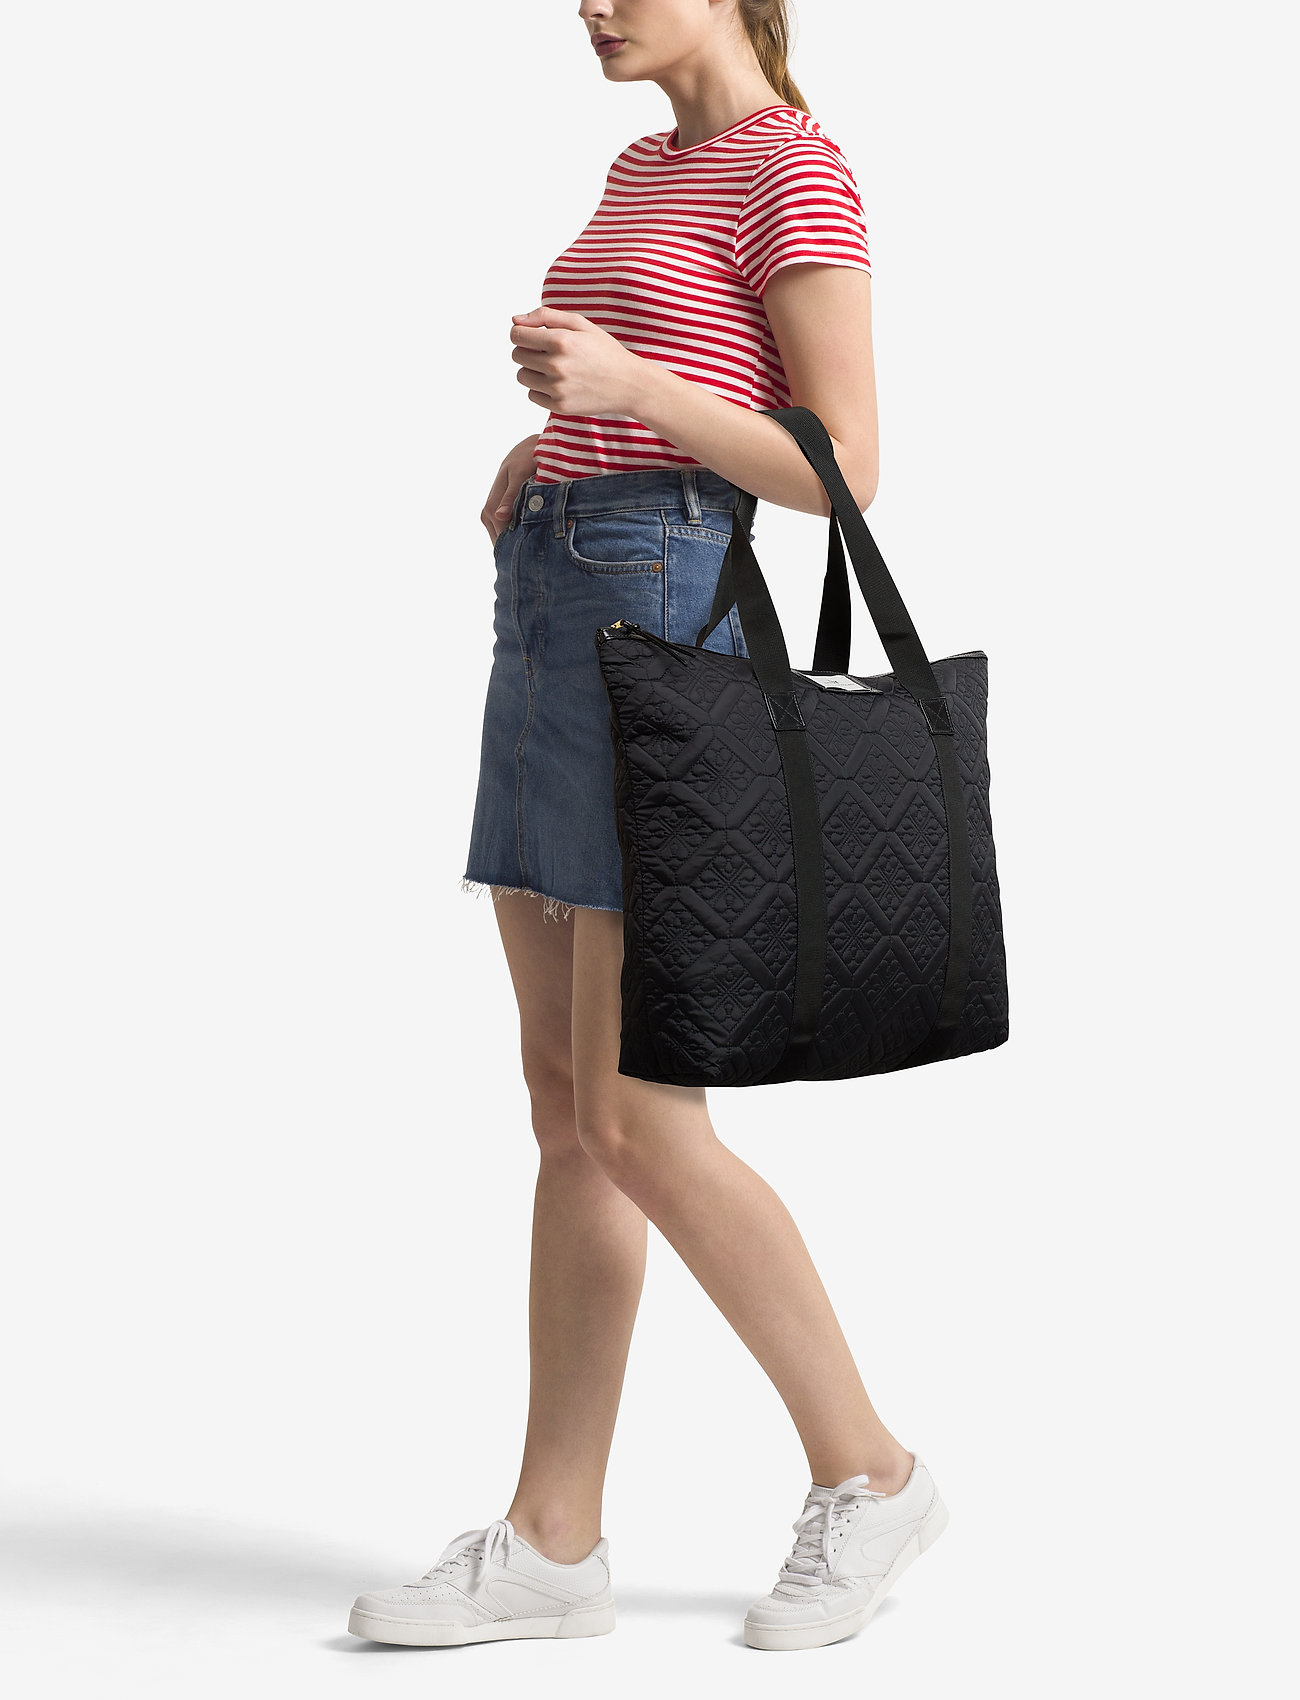 DAY et Day Gweneth Q Flotile Bag - BLACK